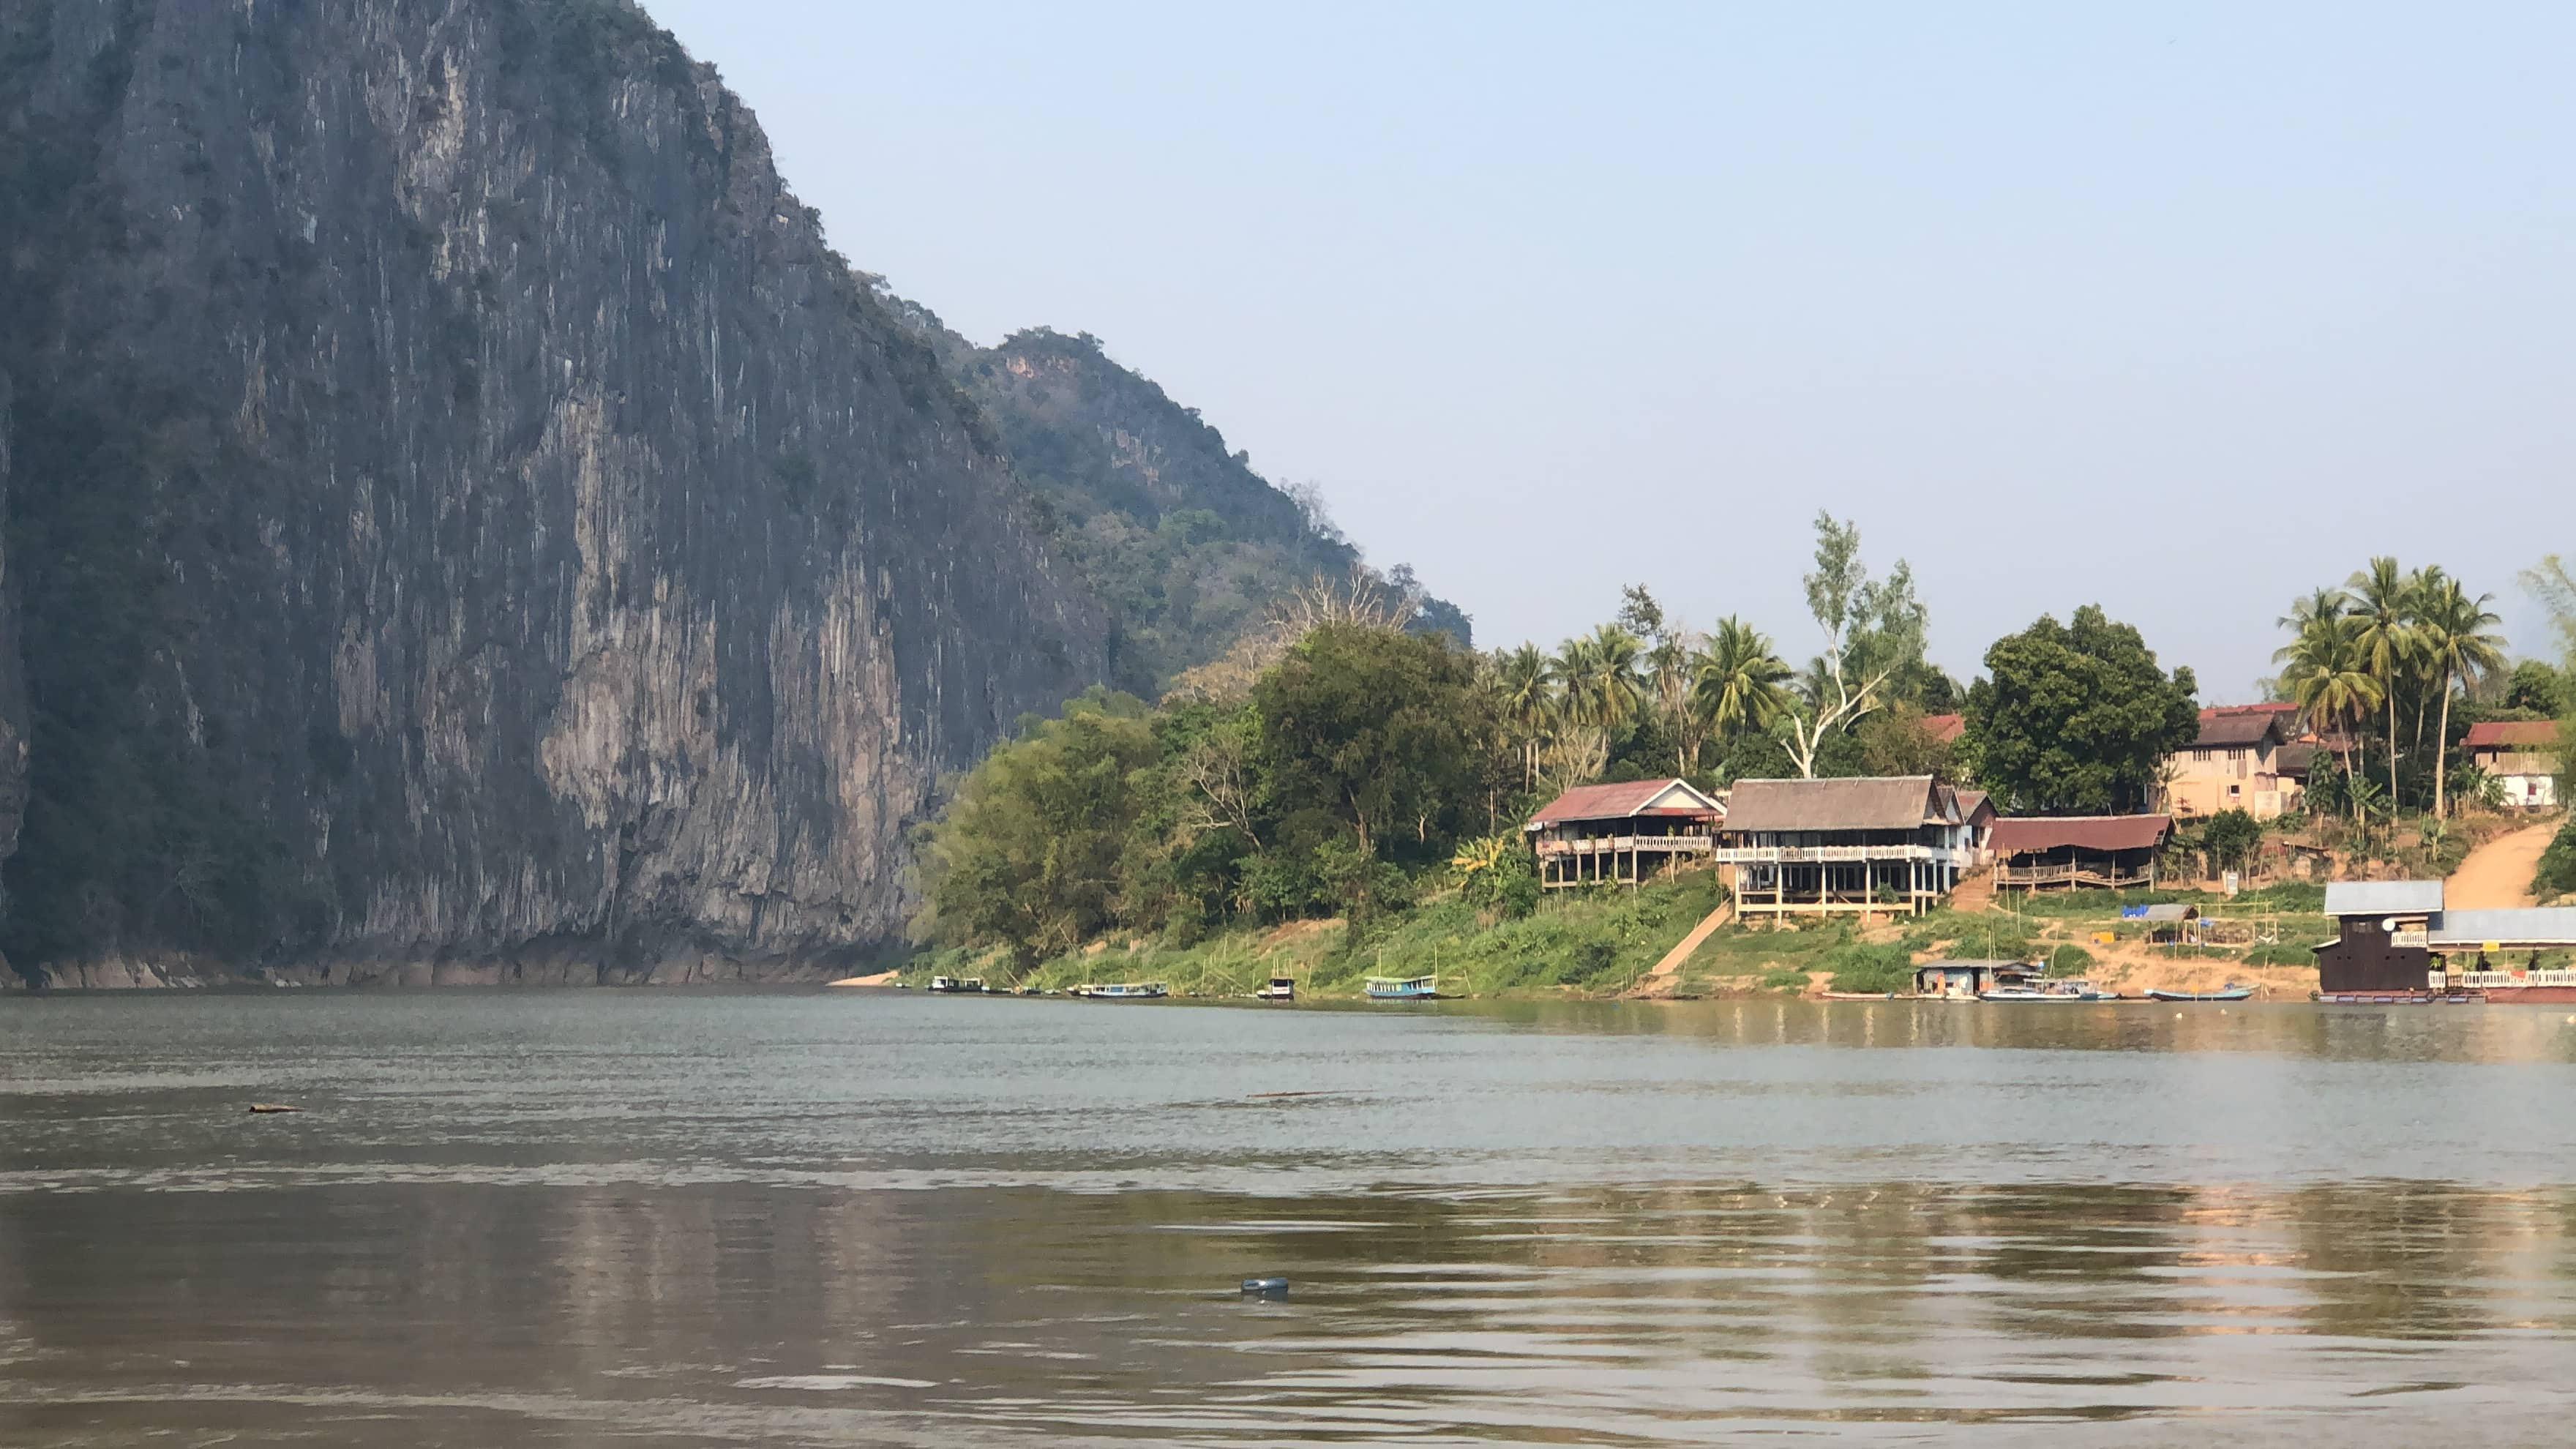 More Mekong Views